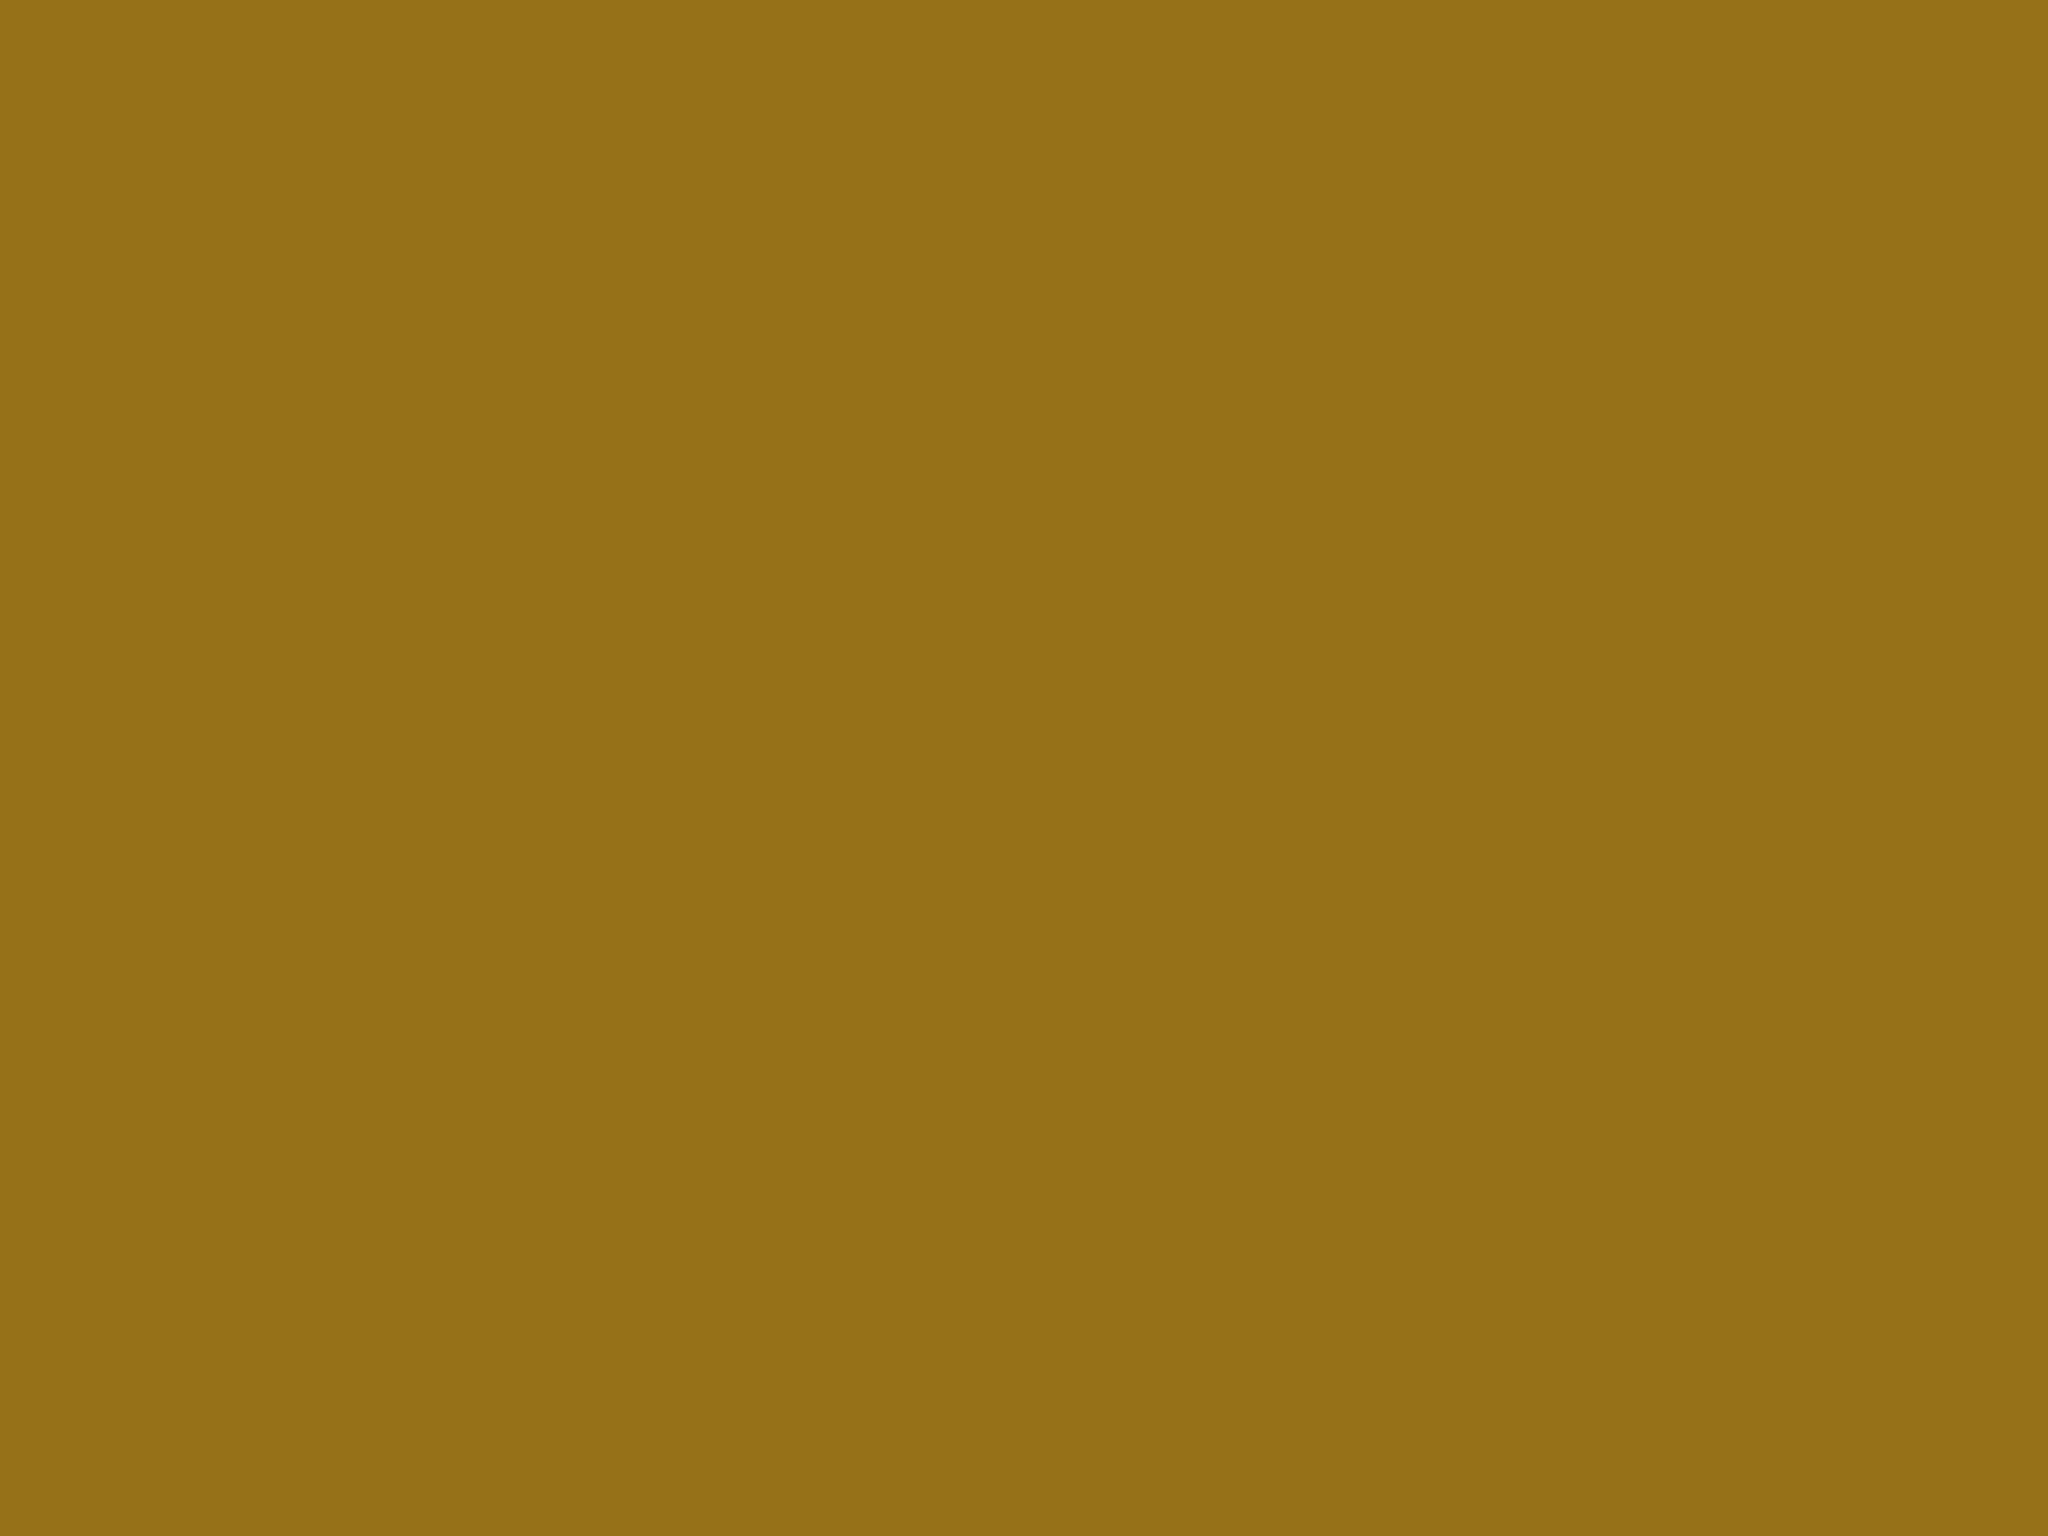 2048x1536 Drab Solid Color Background